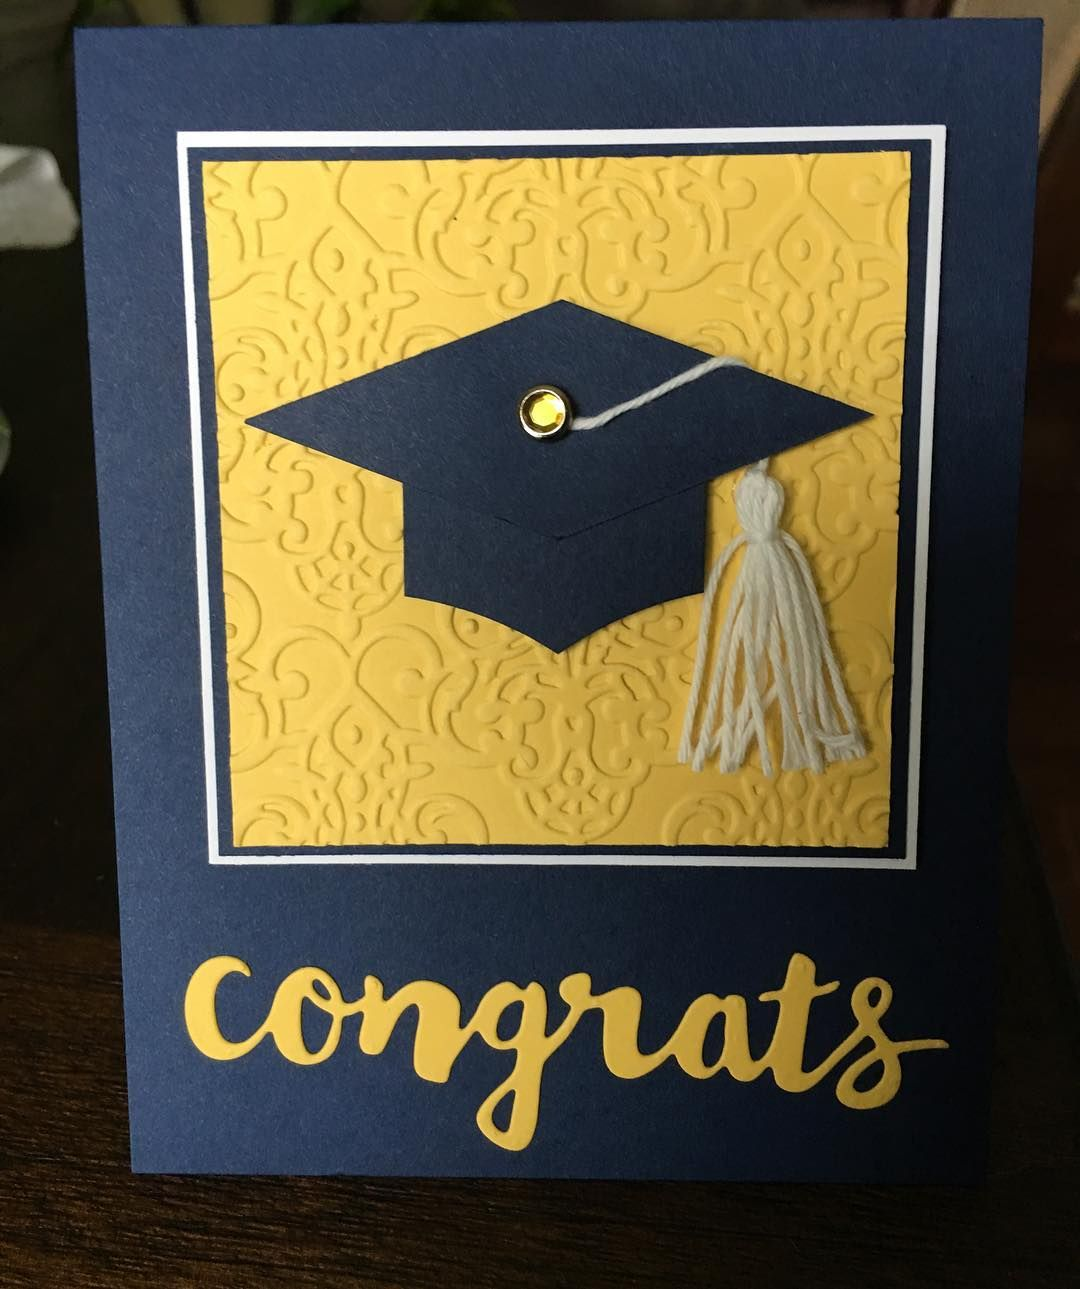 Handmade Graduation Card From Wandasimages Black And Yellow Mortar Board W Graduation Cards Handmade Graduation Cards Diy Stampin Up Graduation Cards